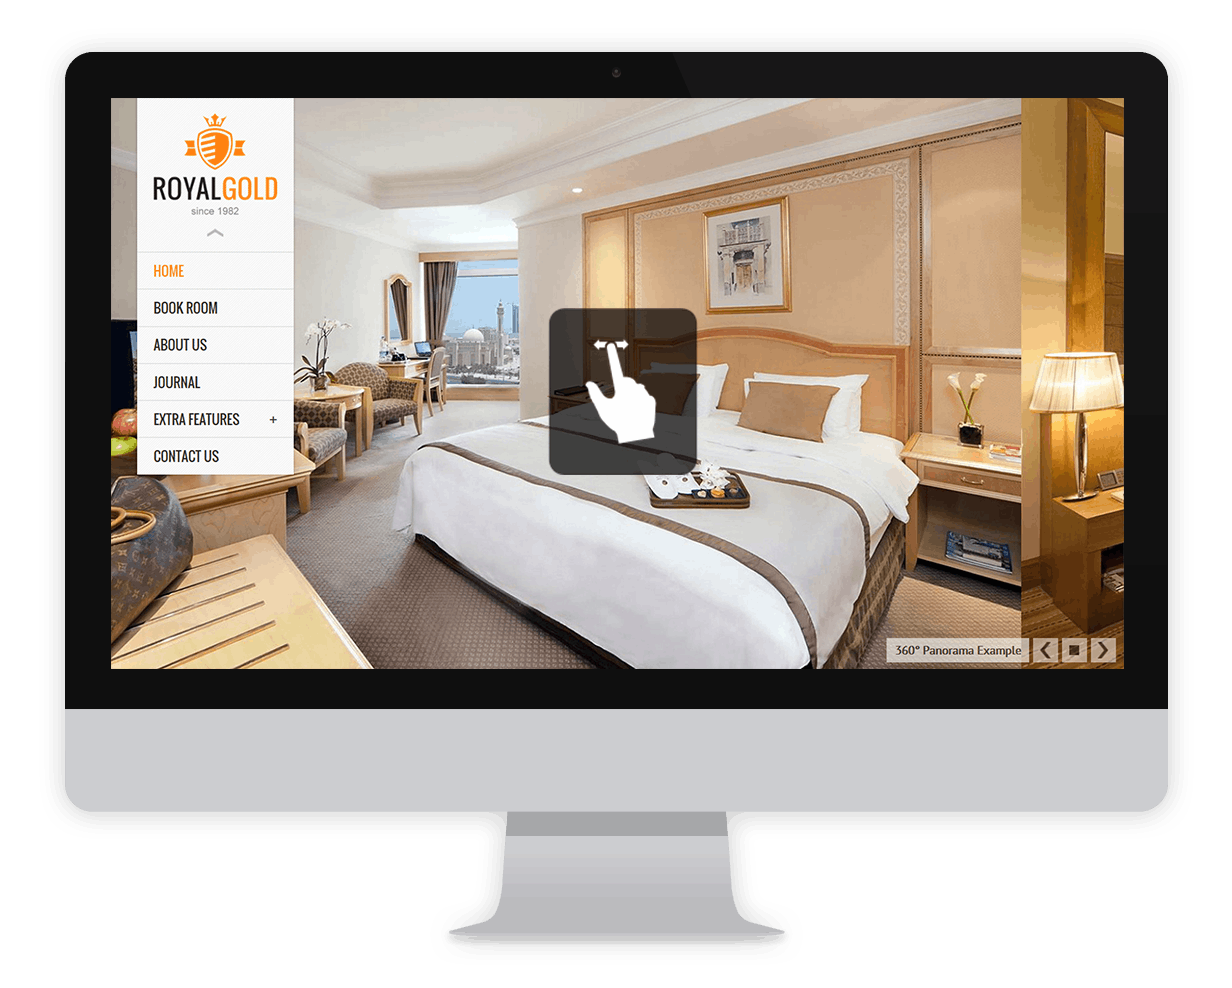 RoyalGold - A Luxury & Responsive Hotel or Resort Theme For WordPress - 1